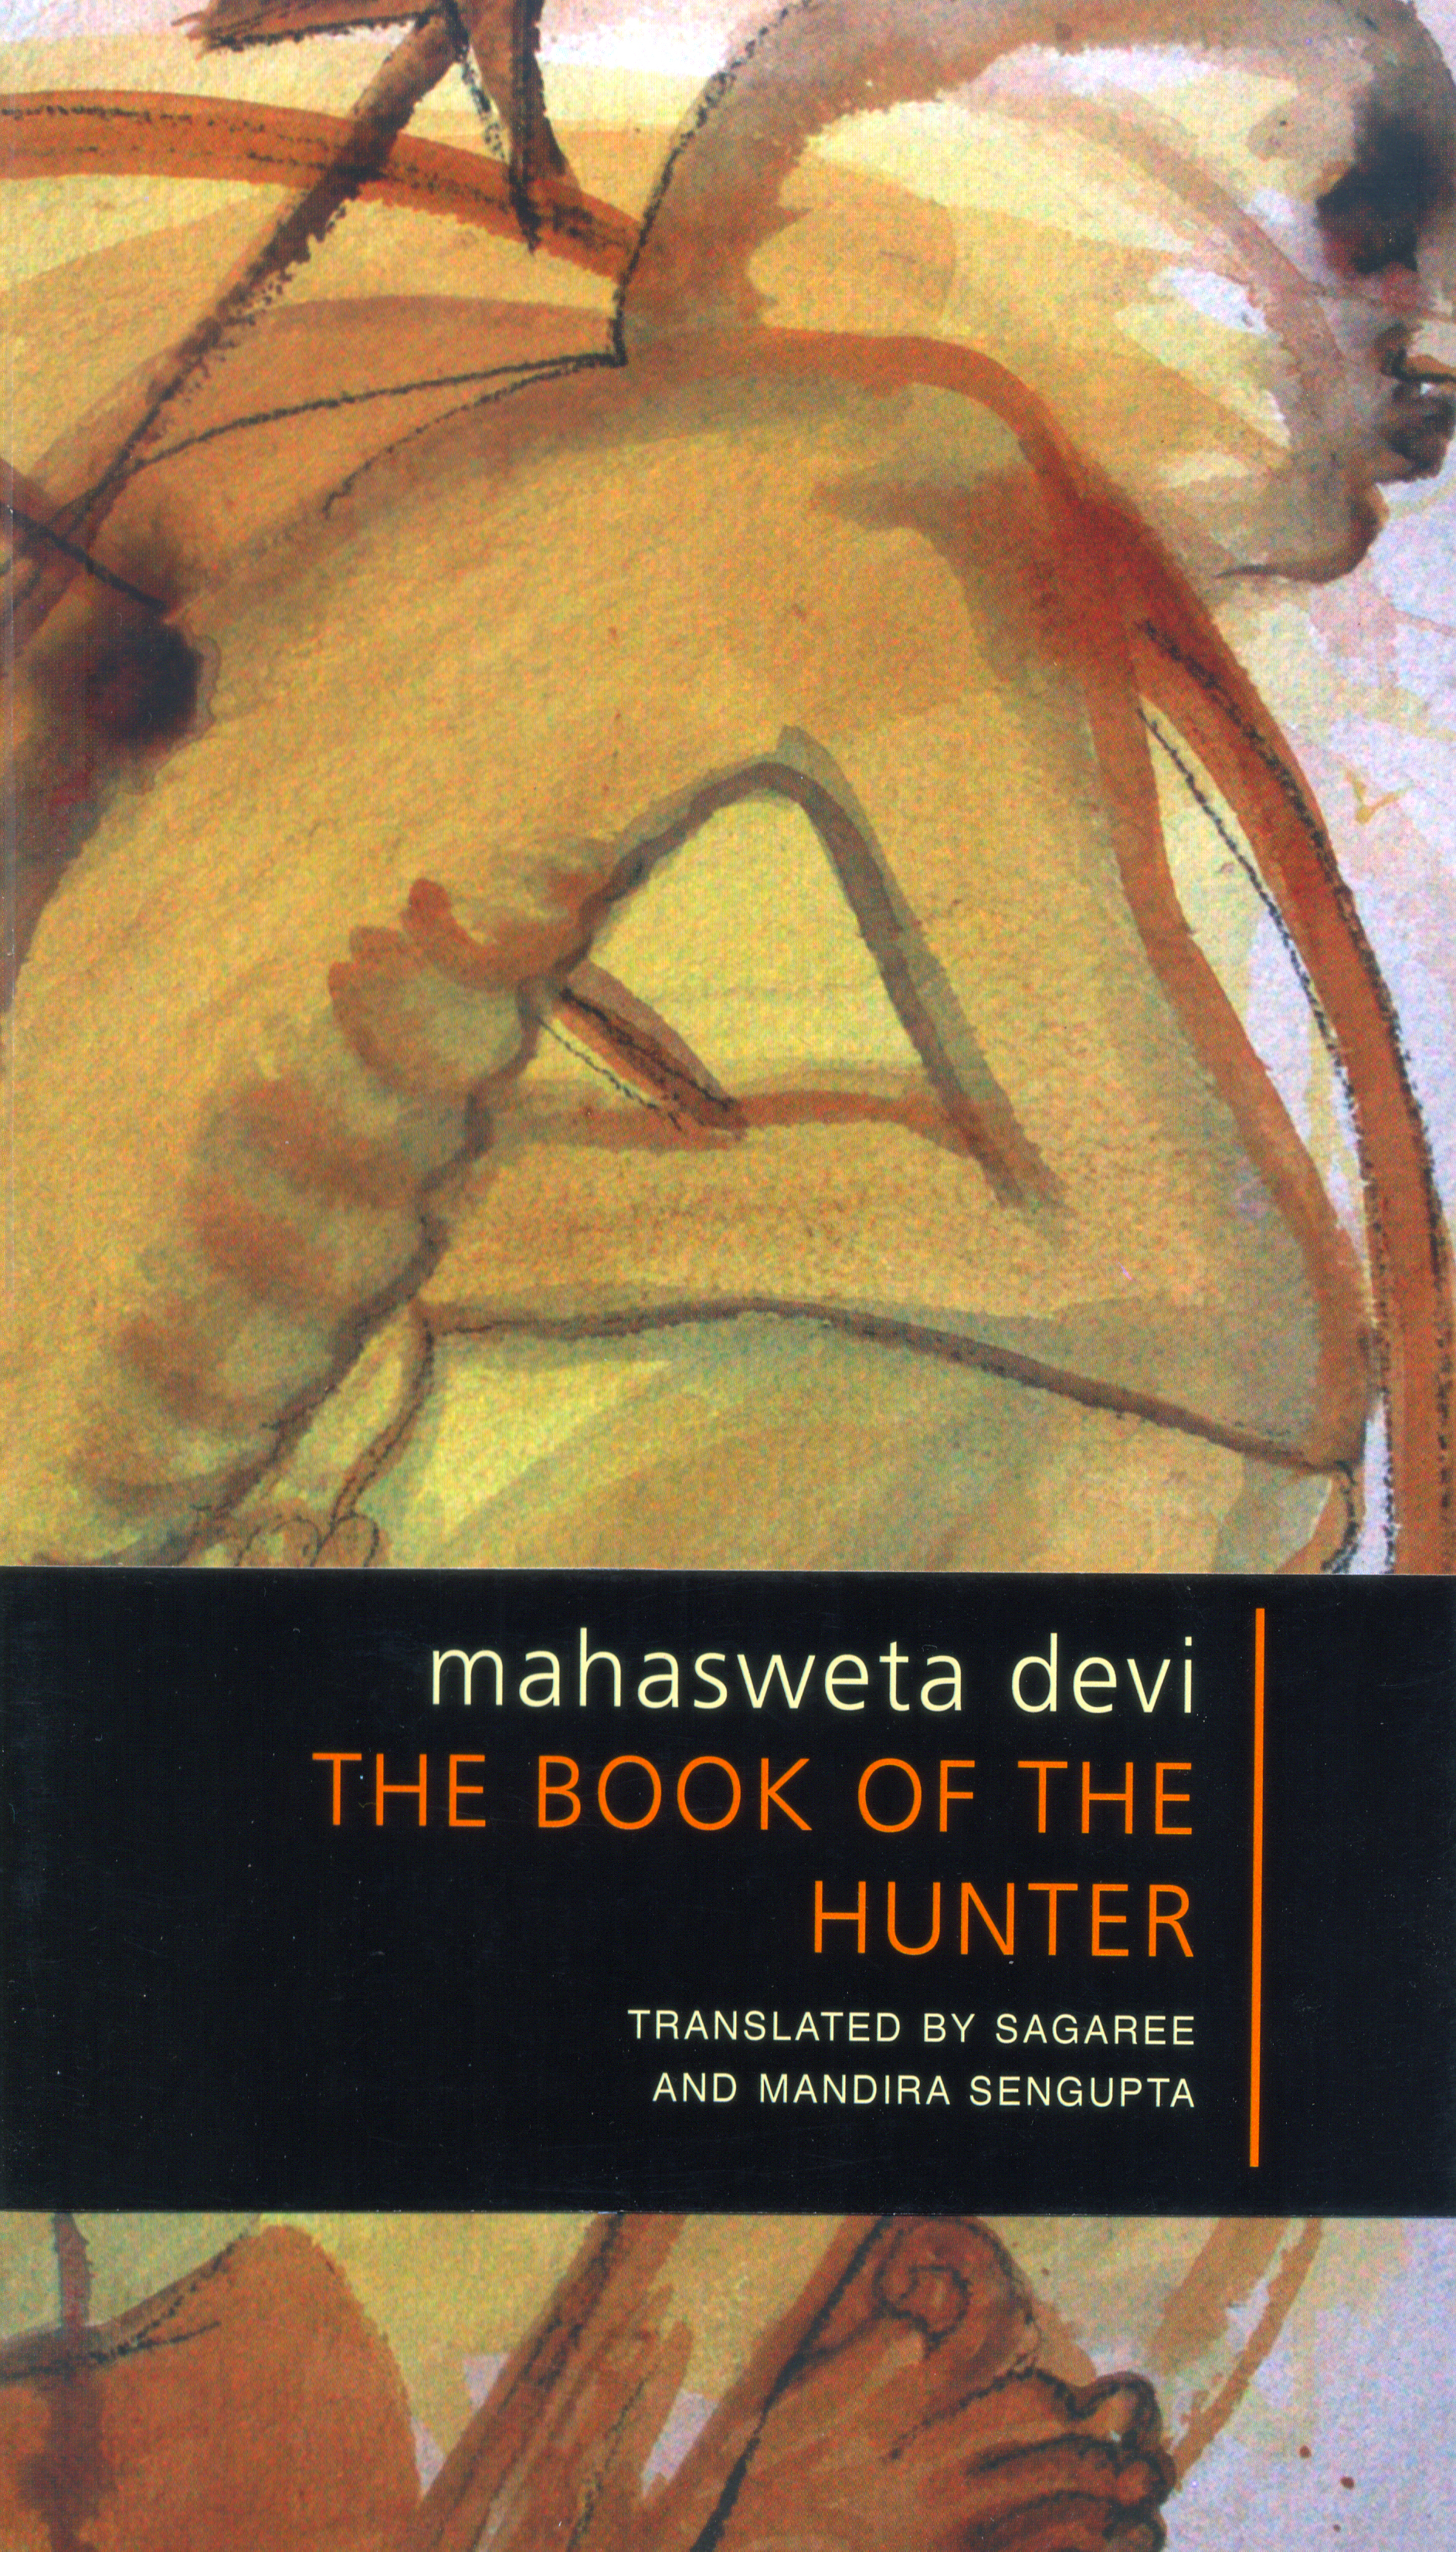 The Book of the Hunter by Mahasweta Devi | Seagull Books